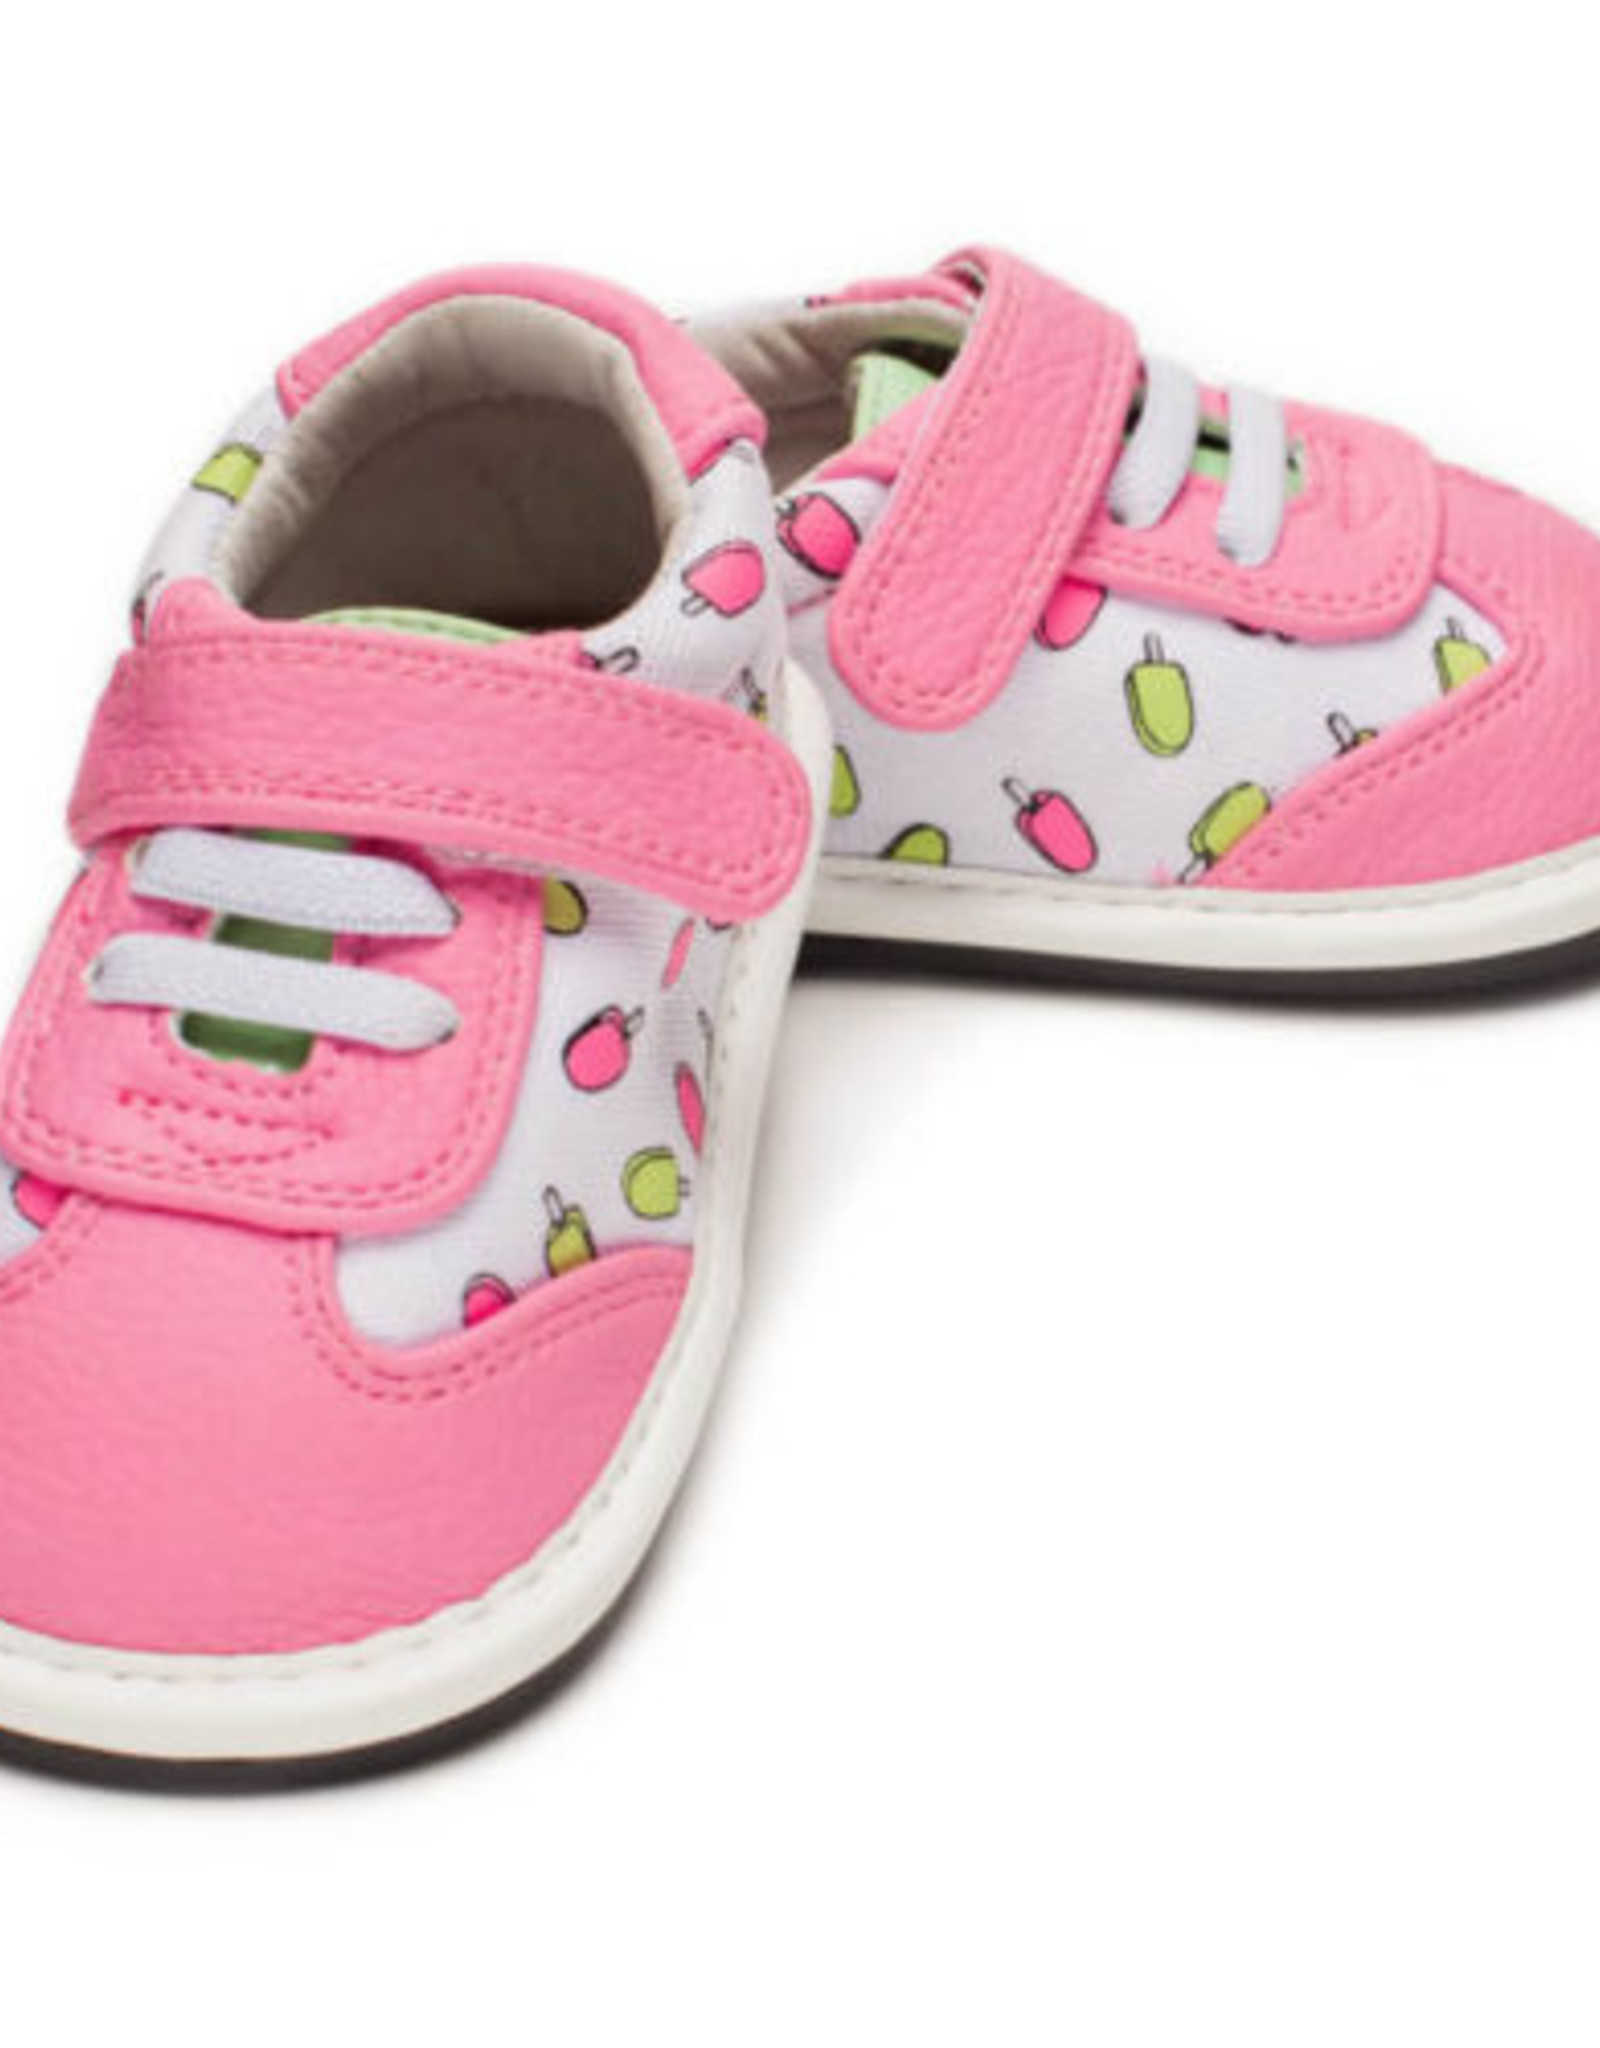 Jack & Lily FA20 Lottie My Shoes